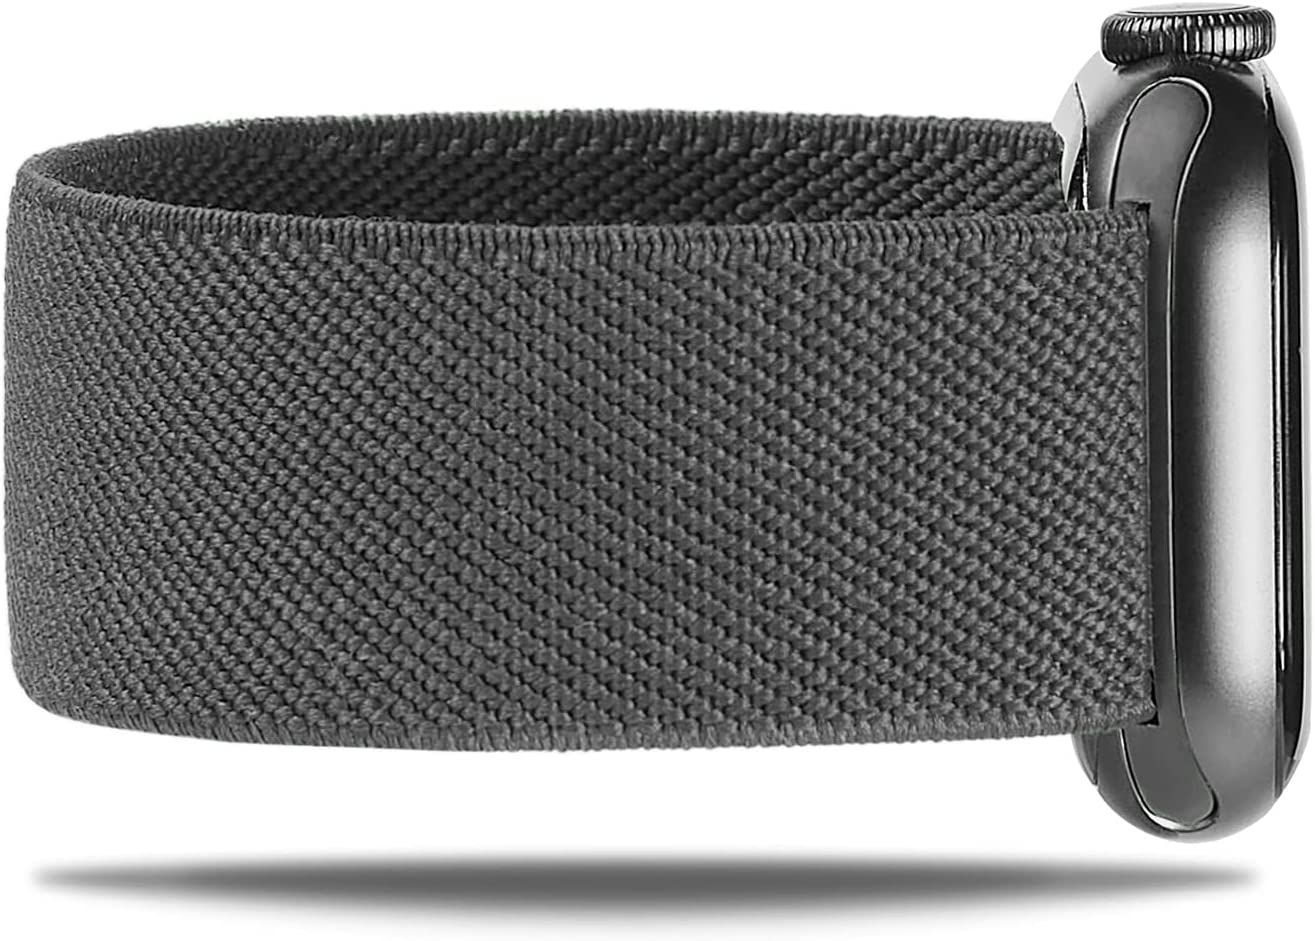 NOLIKO Compatible with Apple Watch Band 44mm 42mm 40mm 38mm Women Men Elastic Stretchy Sport Braided Scrunchie Cute Nylon Solo Loop Strap Wristband for iWatch Series 6 5 4 3 SE, Dark Grey, 38/40, L